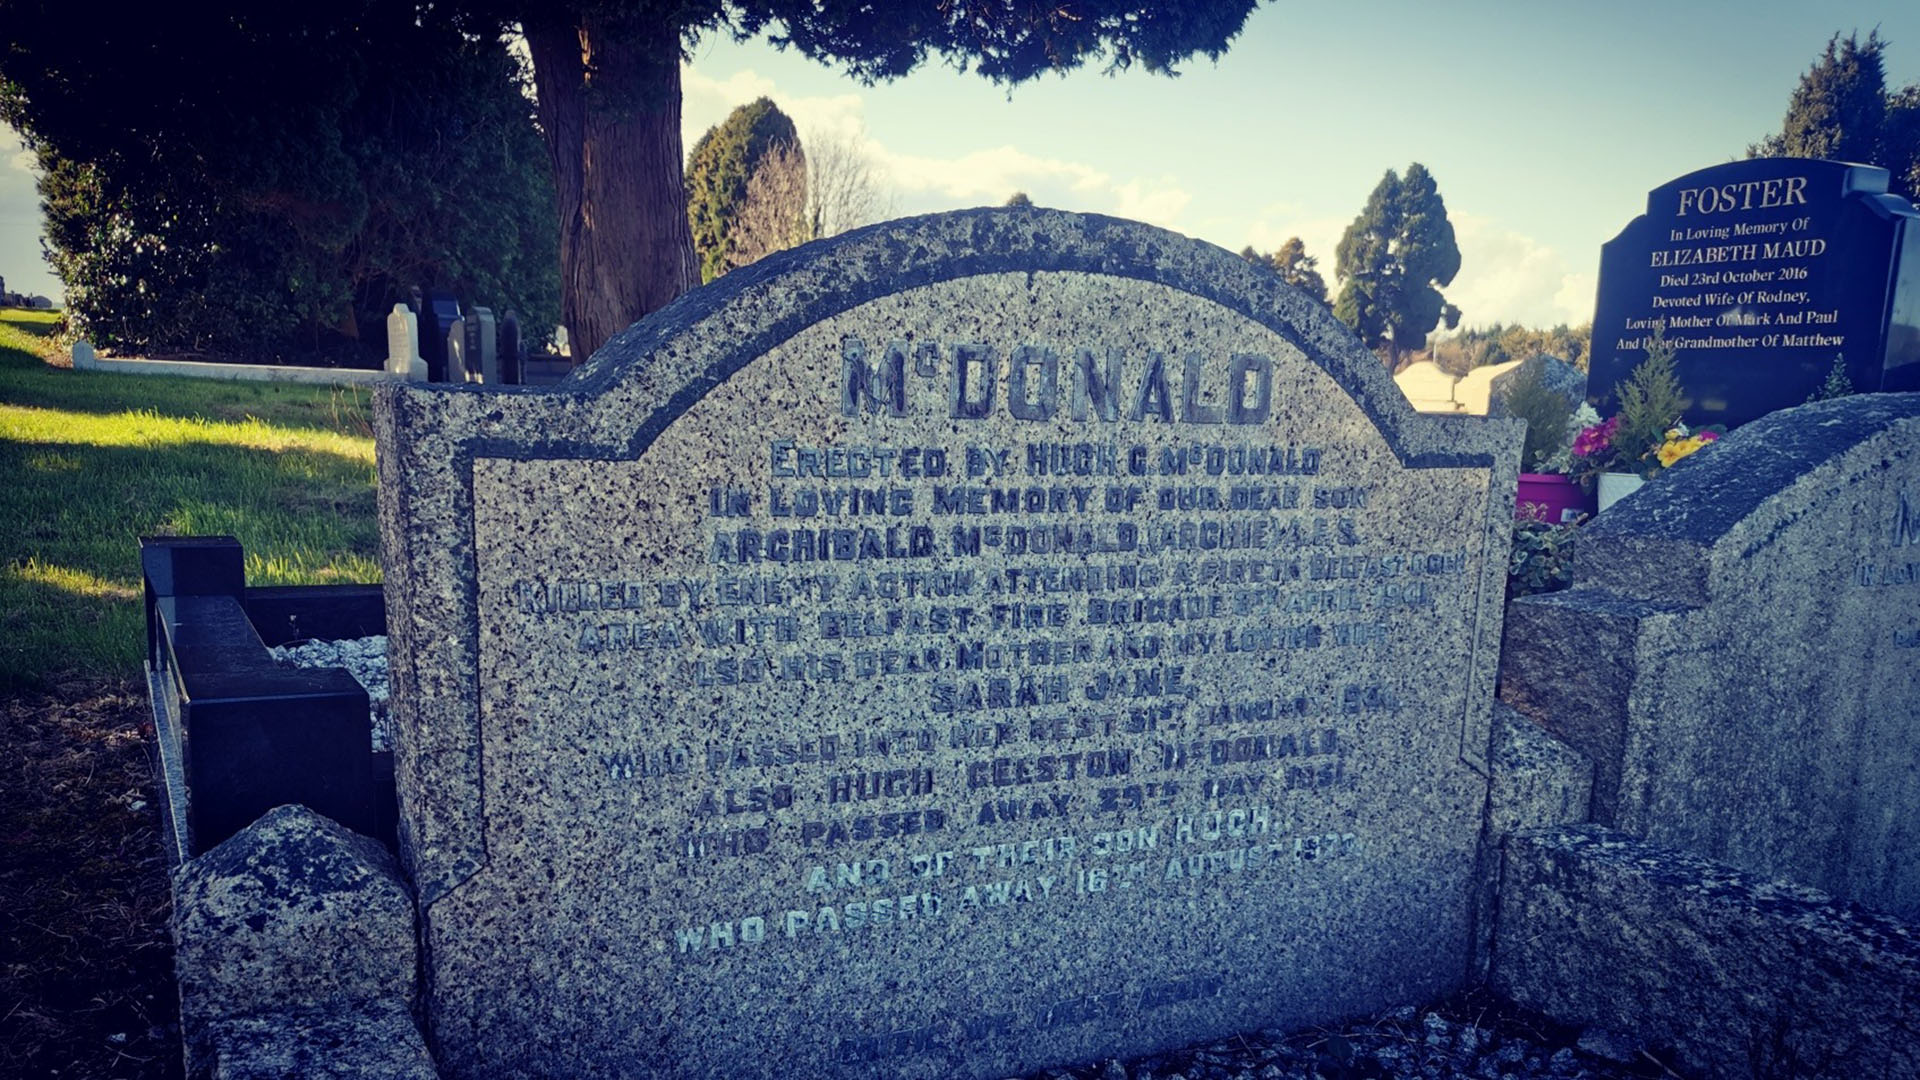 The grave of Archibald 'Archie' McDonald in Dundonald Cemetery, Dundonald, Co. Down